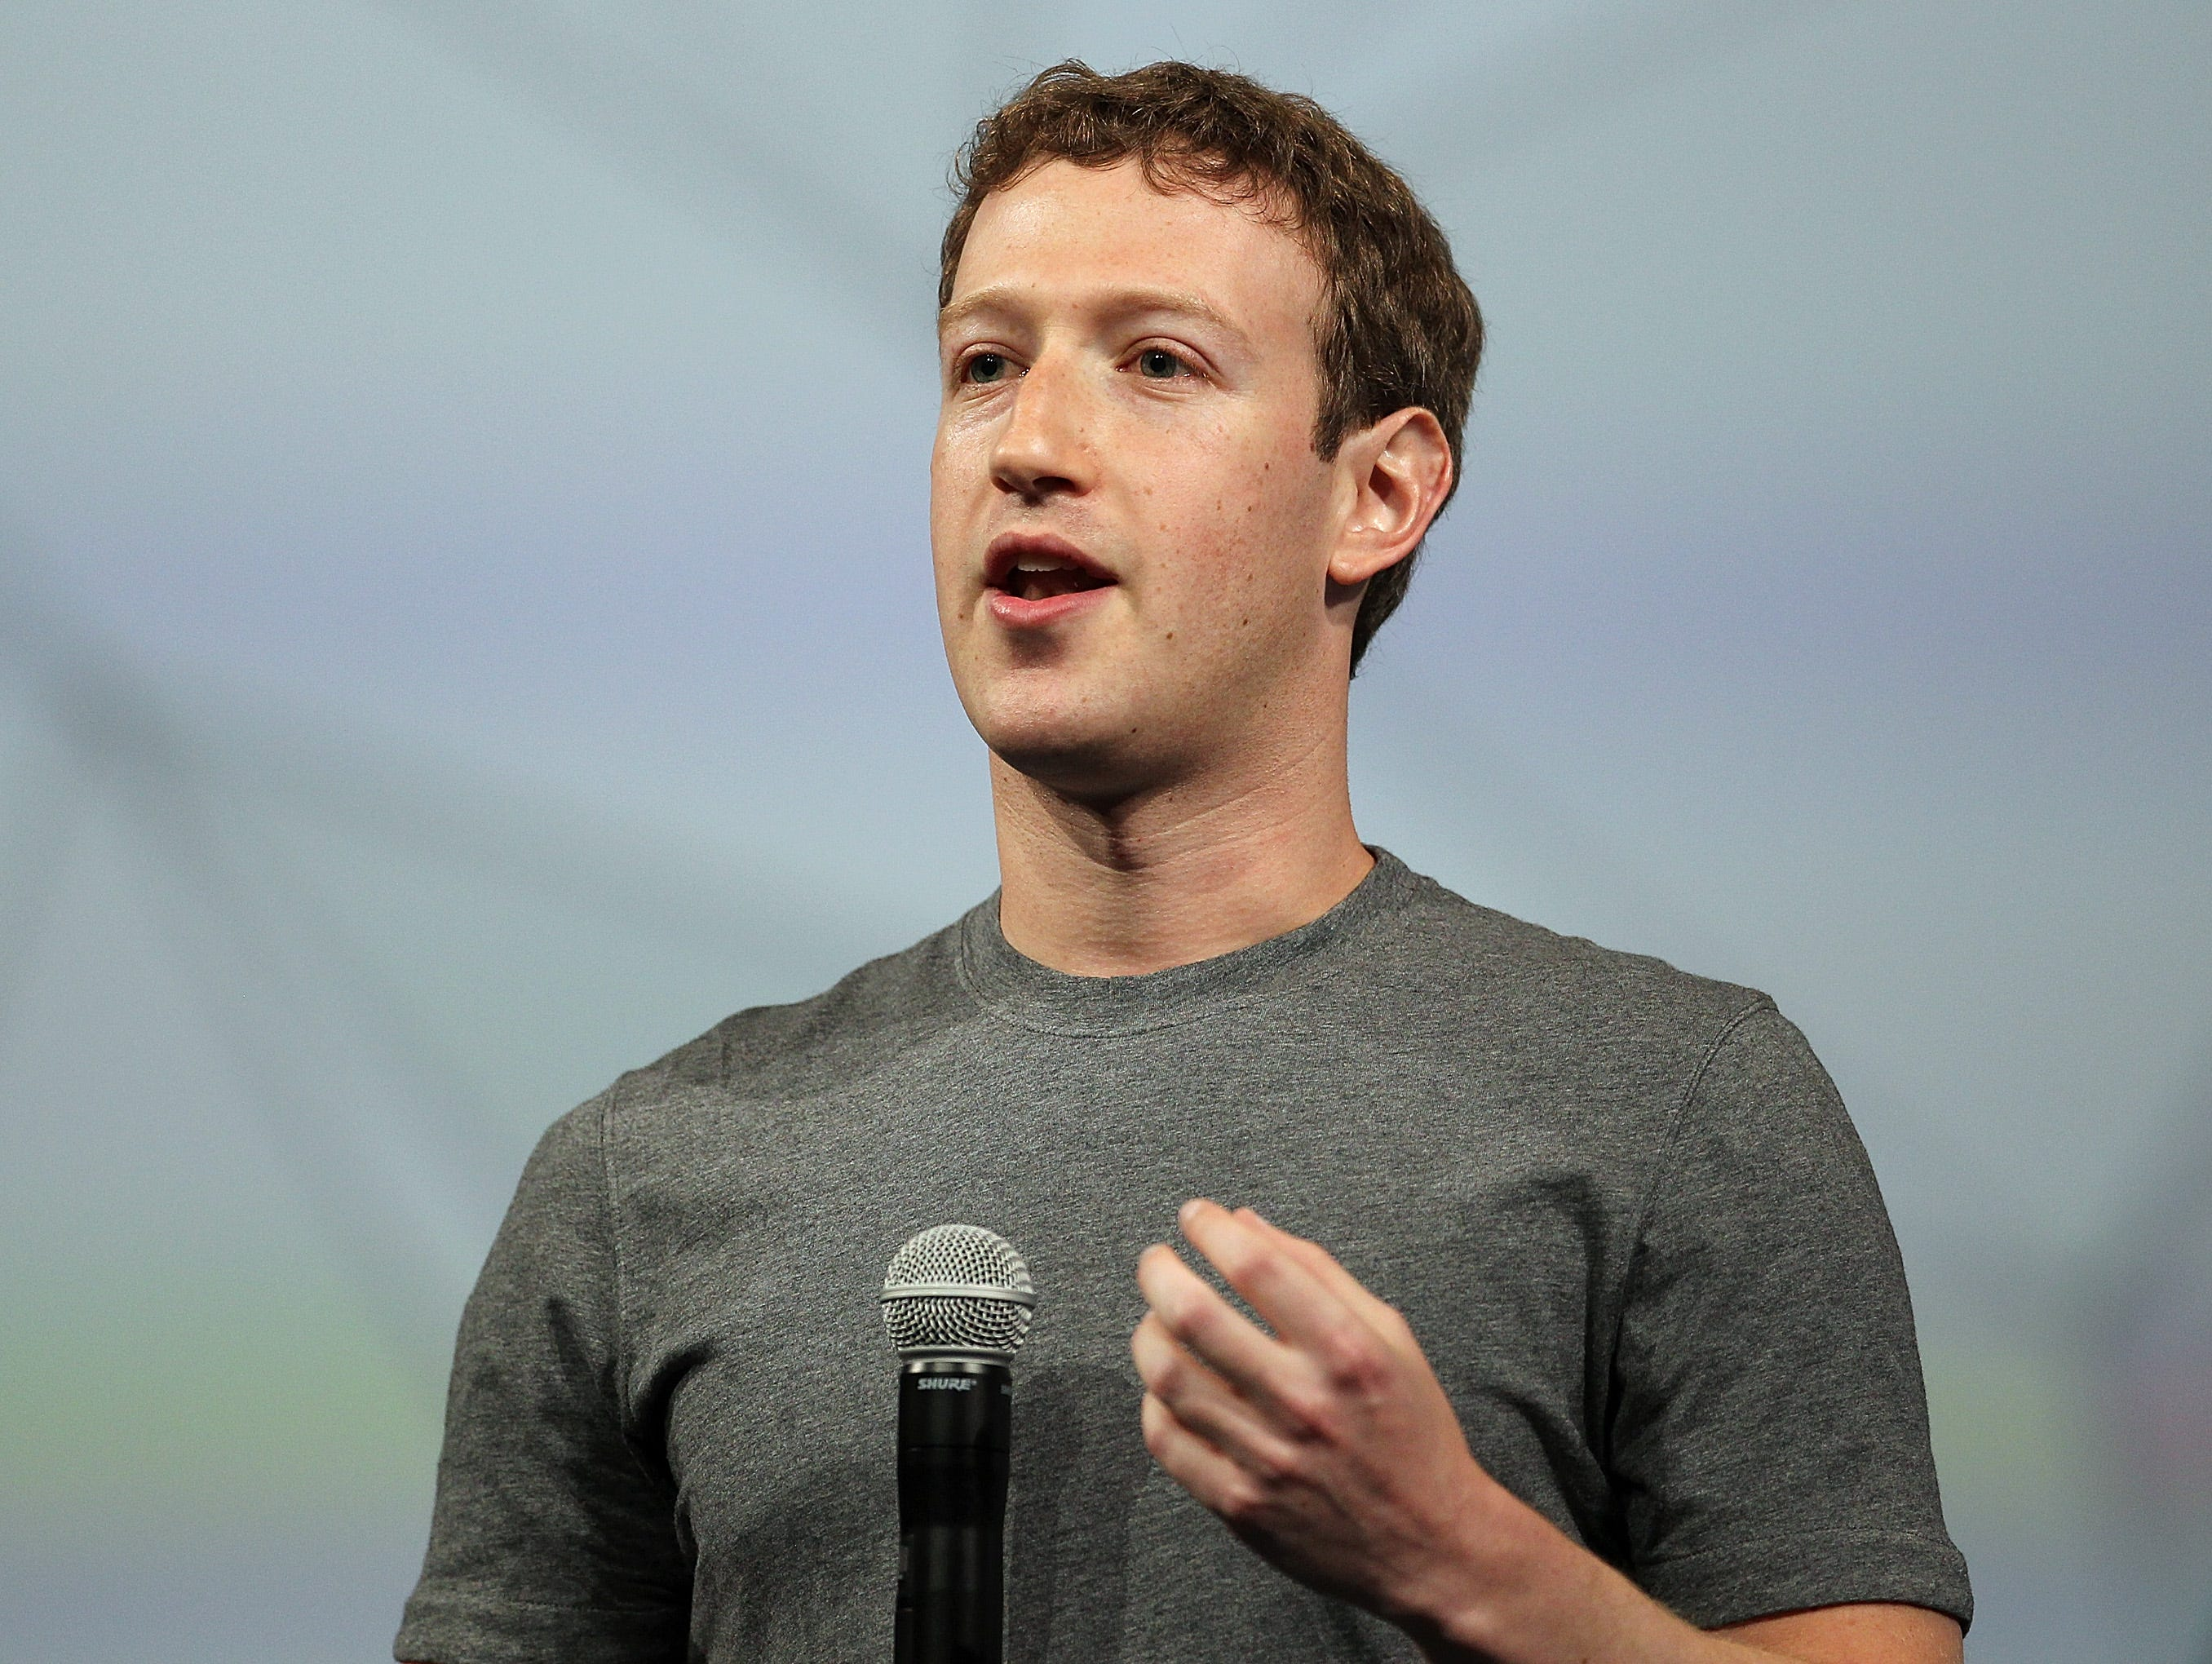 Facebook CEO Mark Zuckerberg delivers the opening keynote at the Facebook conference in San Francisco in April.